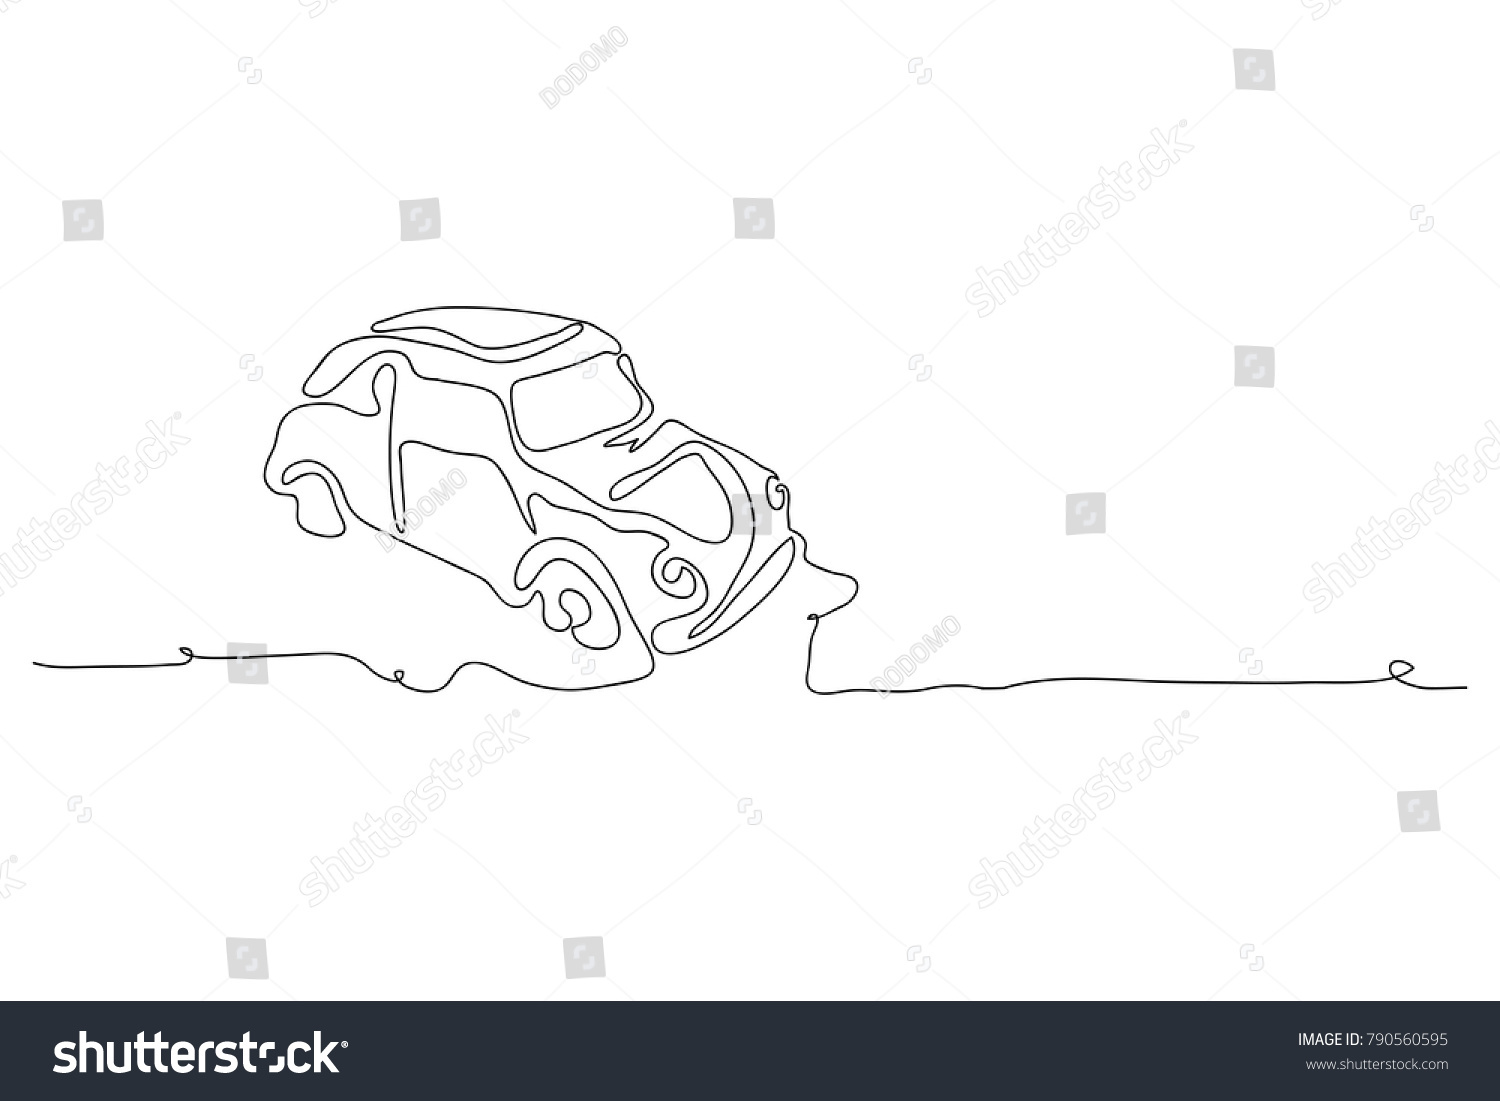 Line Drawing Of Car : Car drawings cool cars to draw